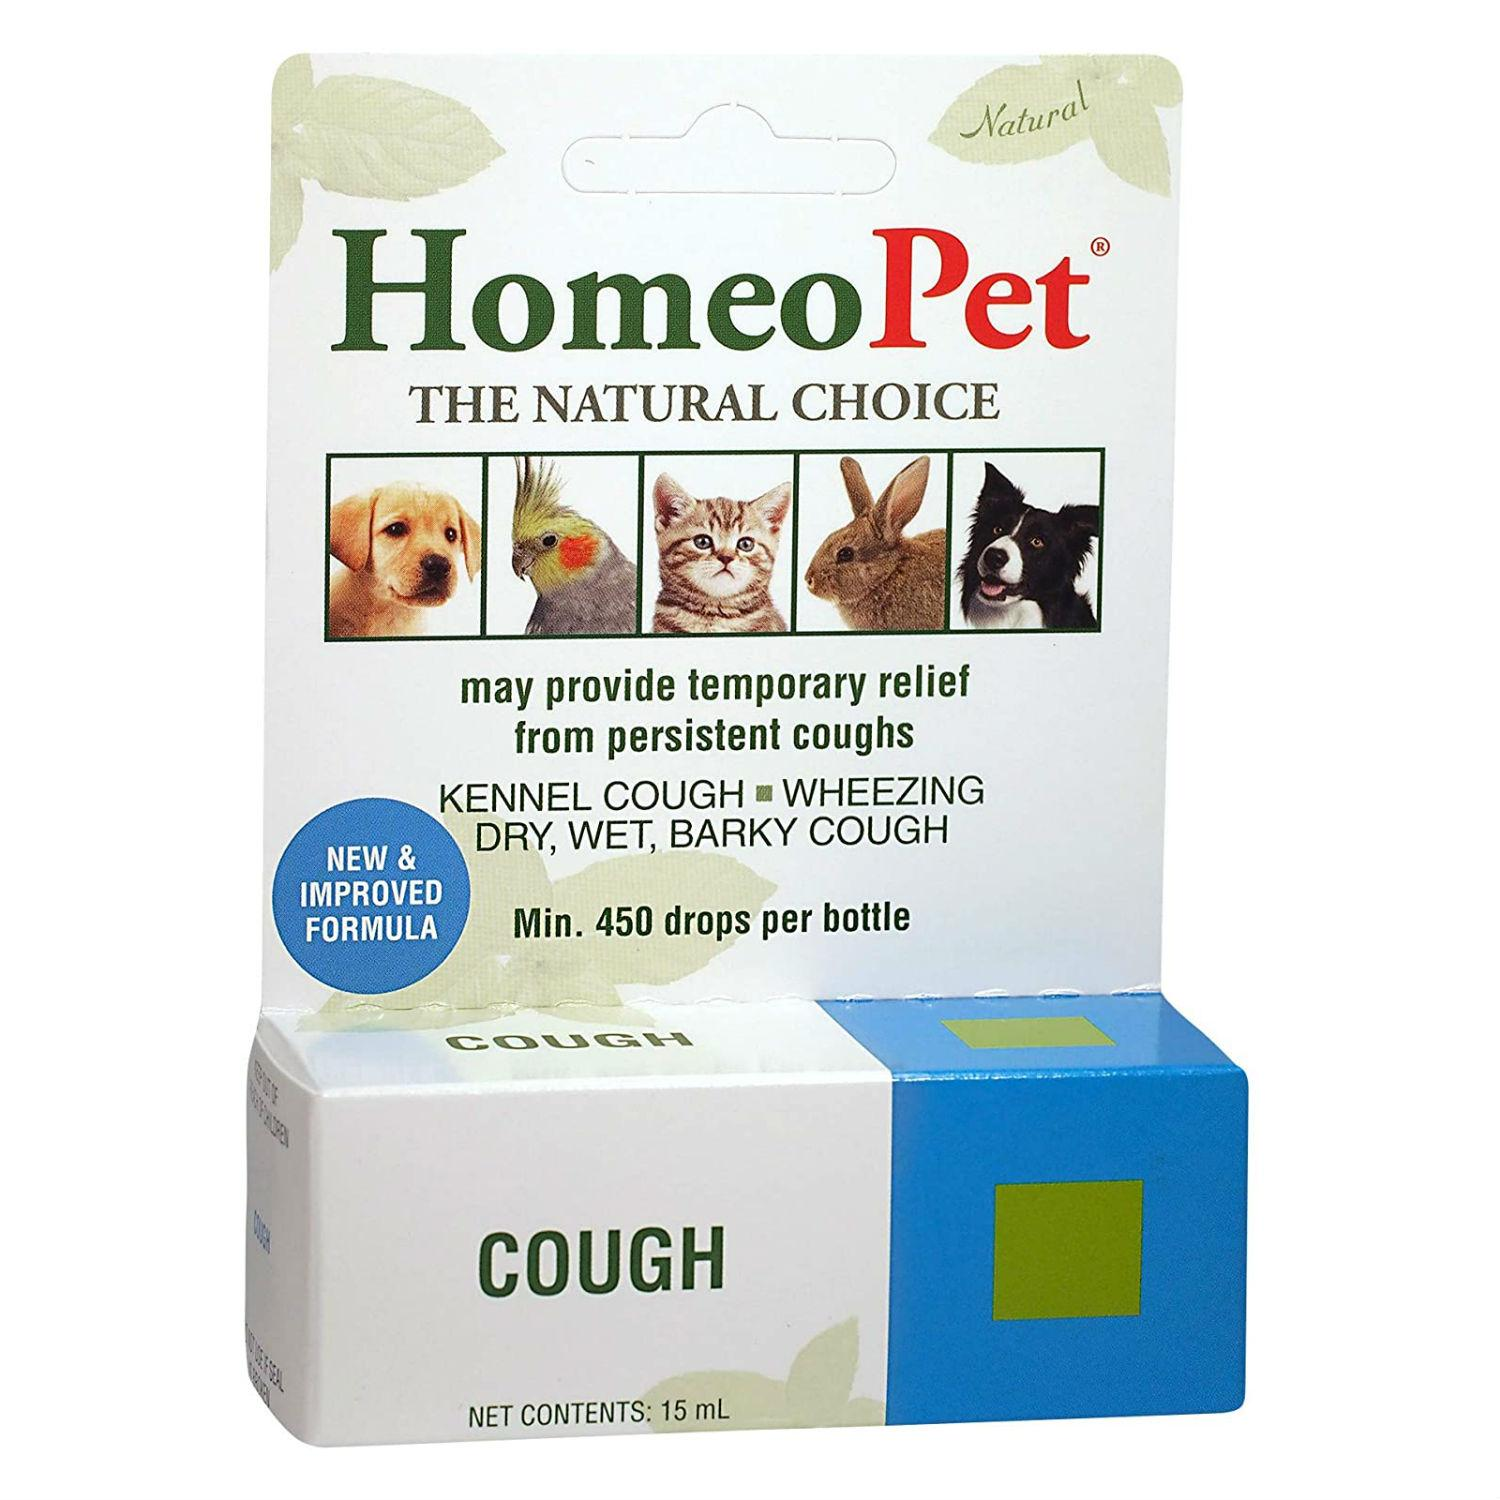 HomeoPet Cough Supplement for Dog, Cat, and Small Animals